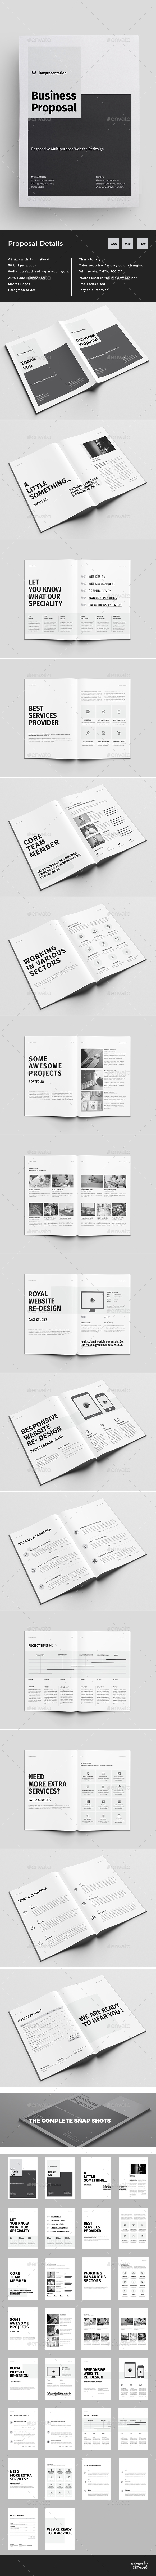 30 Pages Clean Business Proposal Template InDesign INDD